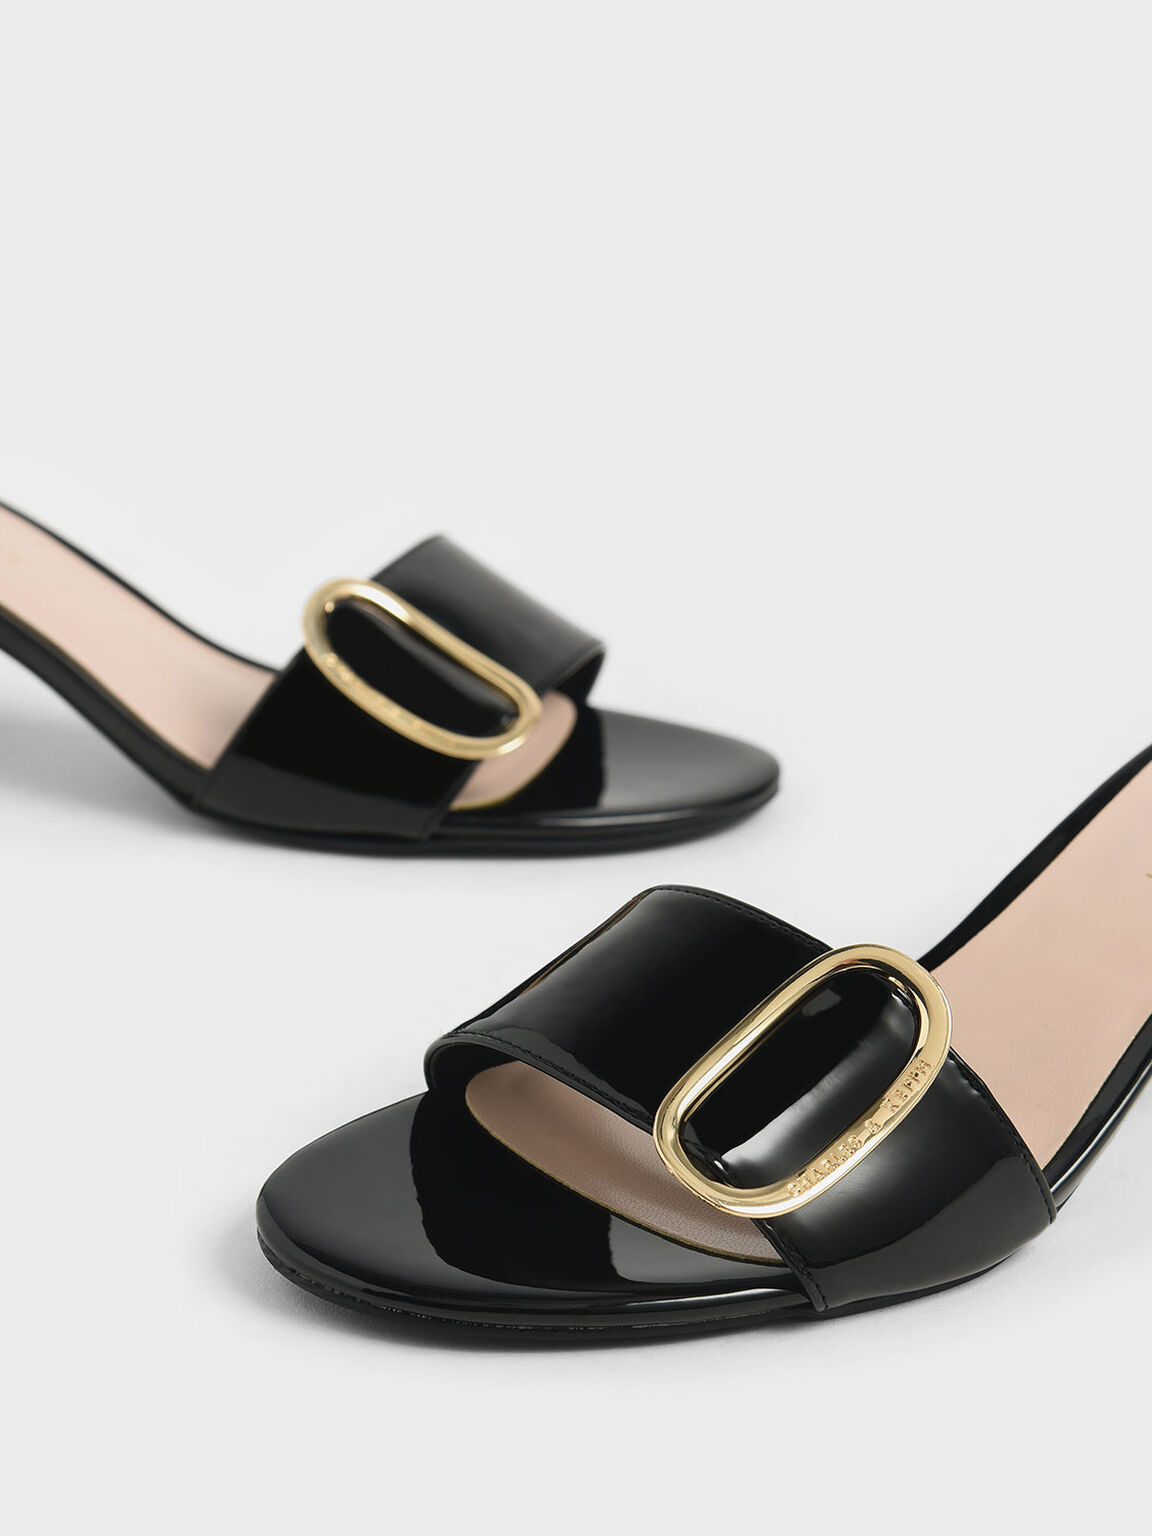 Oversized Buckle Patent Slide Sandals, Black, hi-res